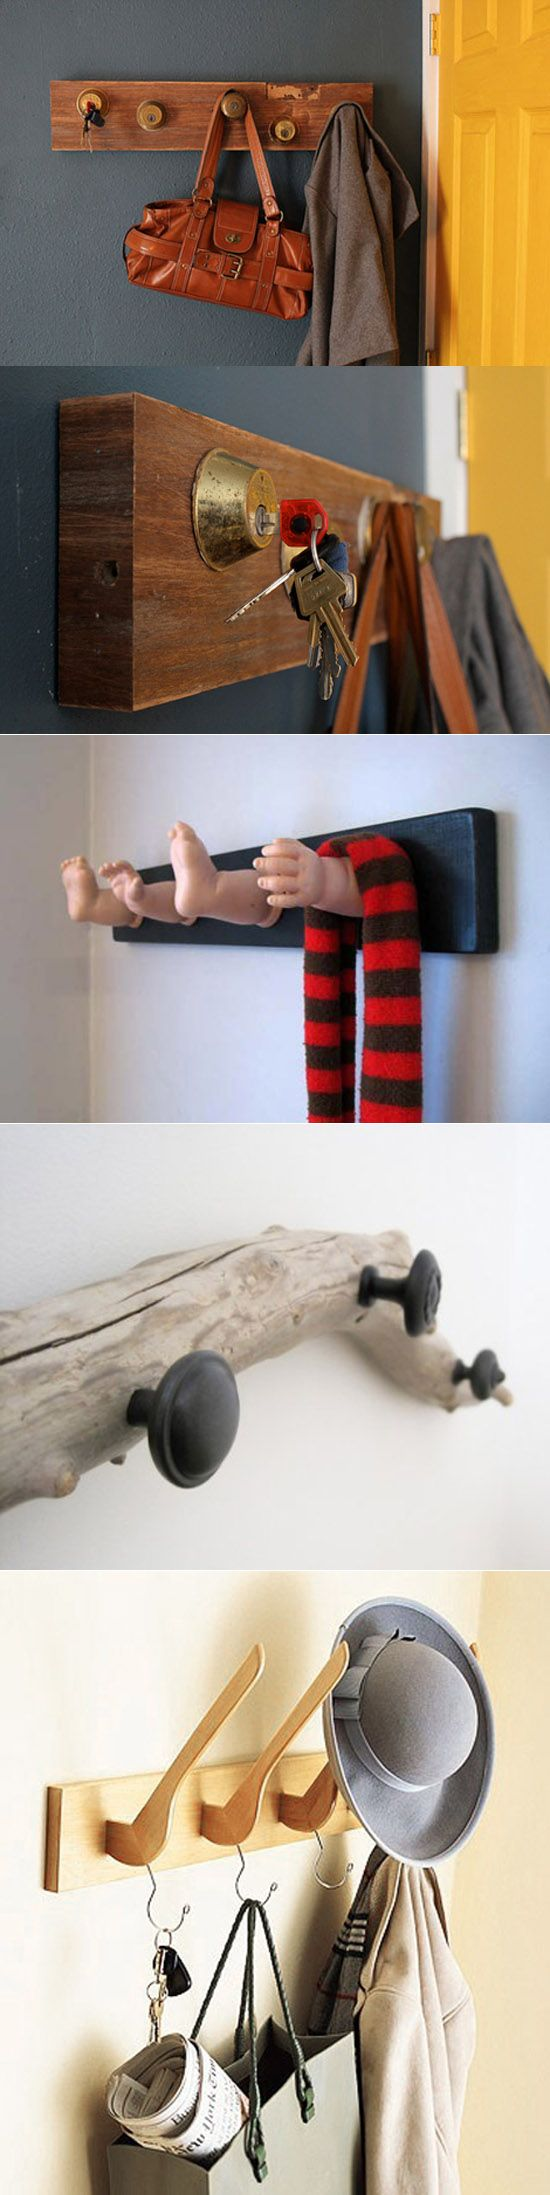 These are super rad! Minus the doll hands and feet one, that's just creepy. DIY hangers